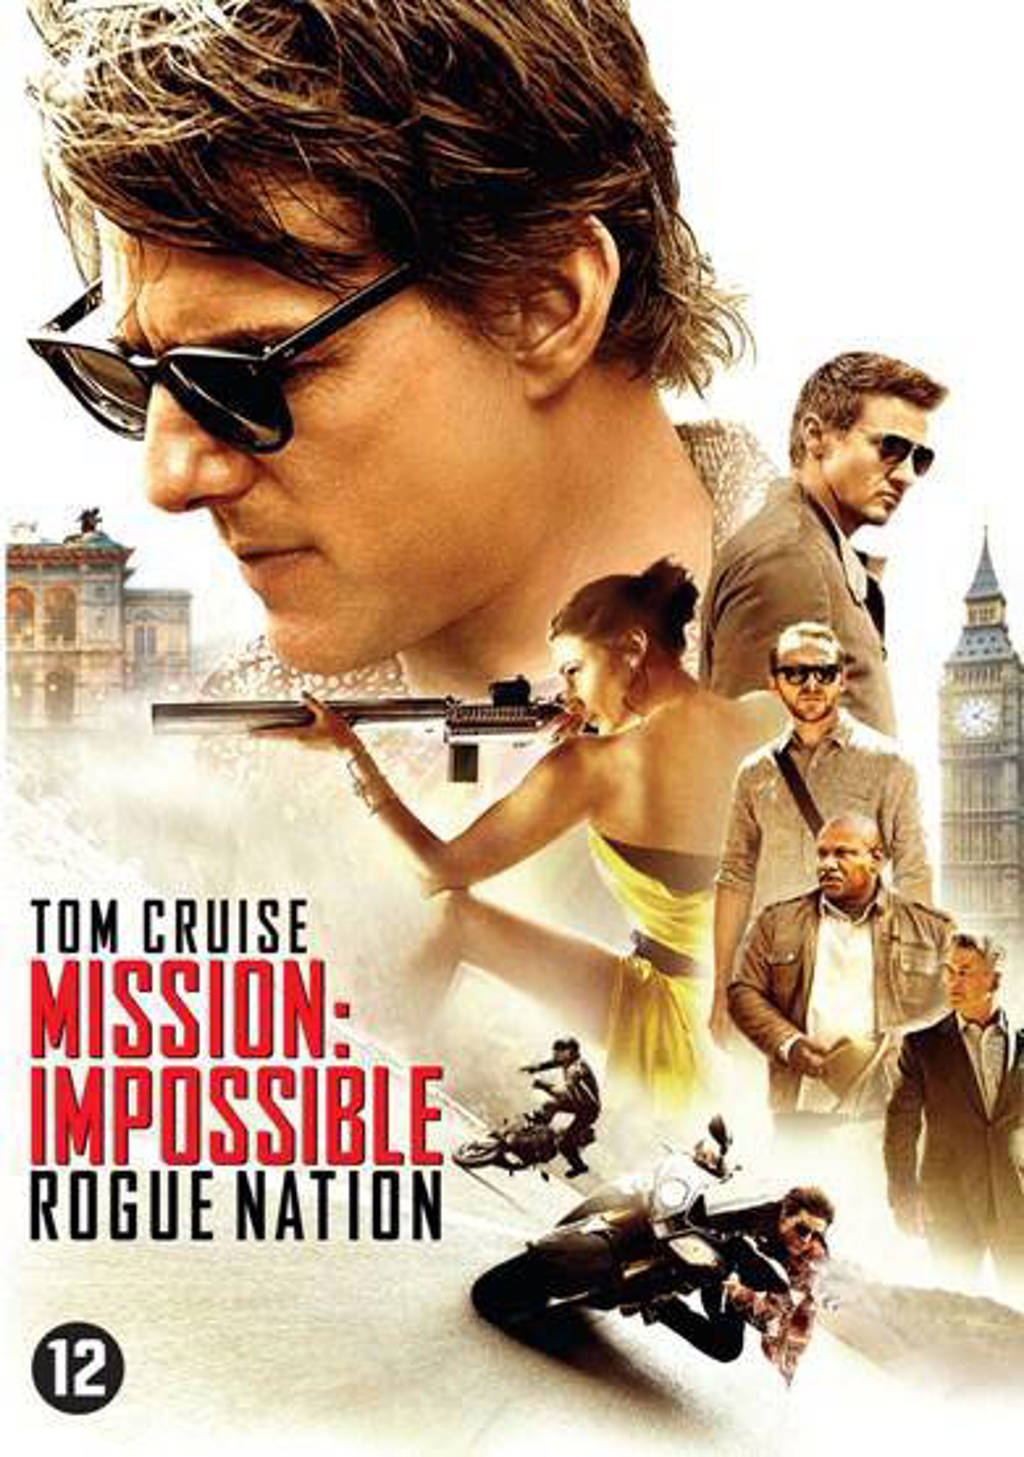 Mission impossible 5 - Rogue nation (DVD)